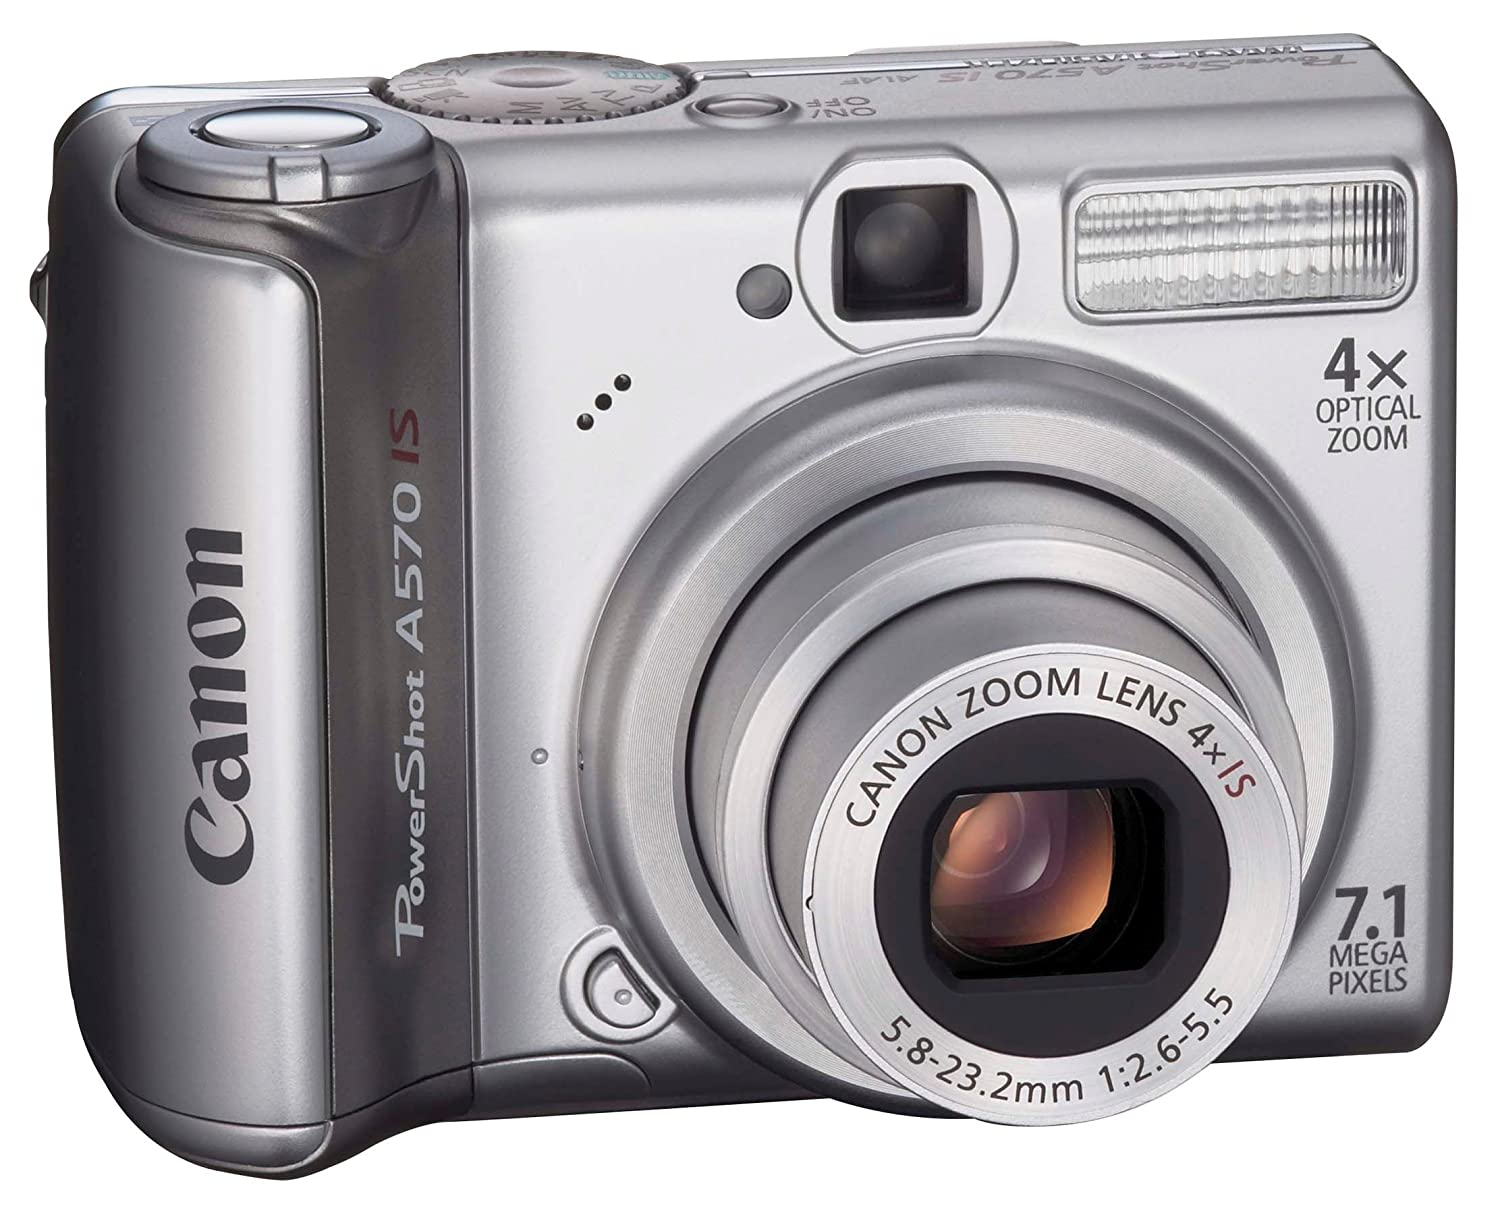 CANON POWERSHOT A570IS DRIVERS FOR WINDOWS MAC